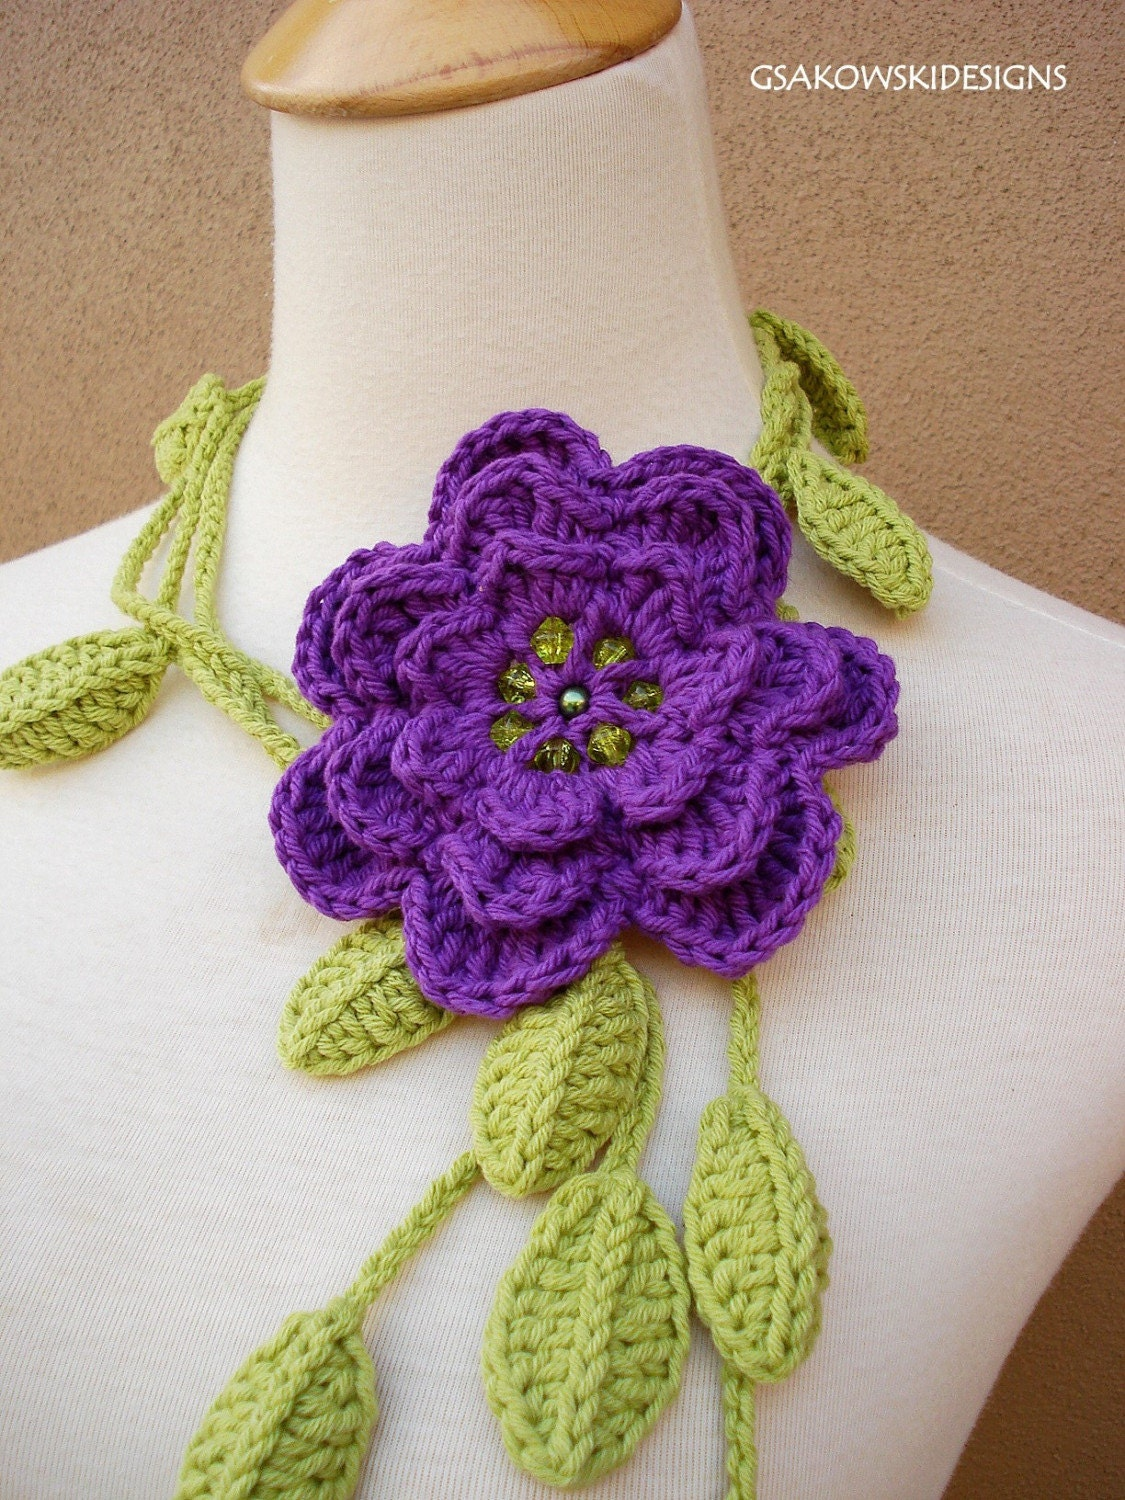 How to Get Creative With Crochet Flowers | eHow.com